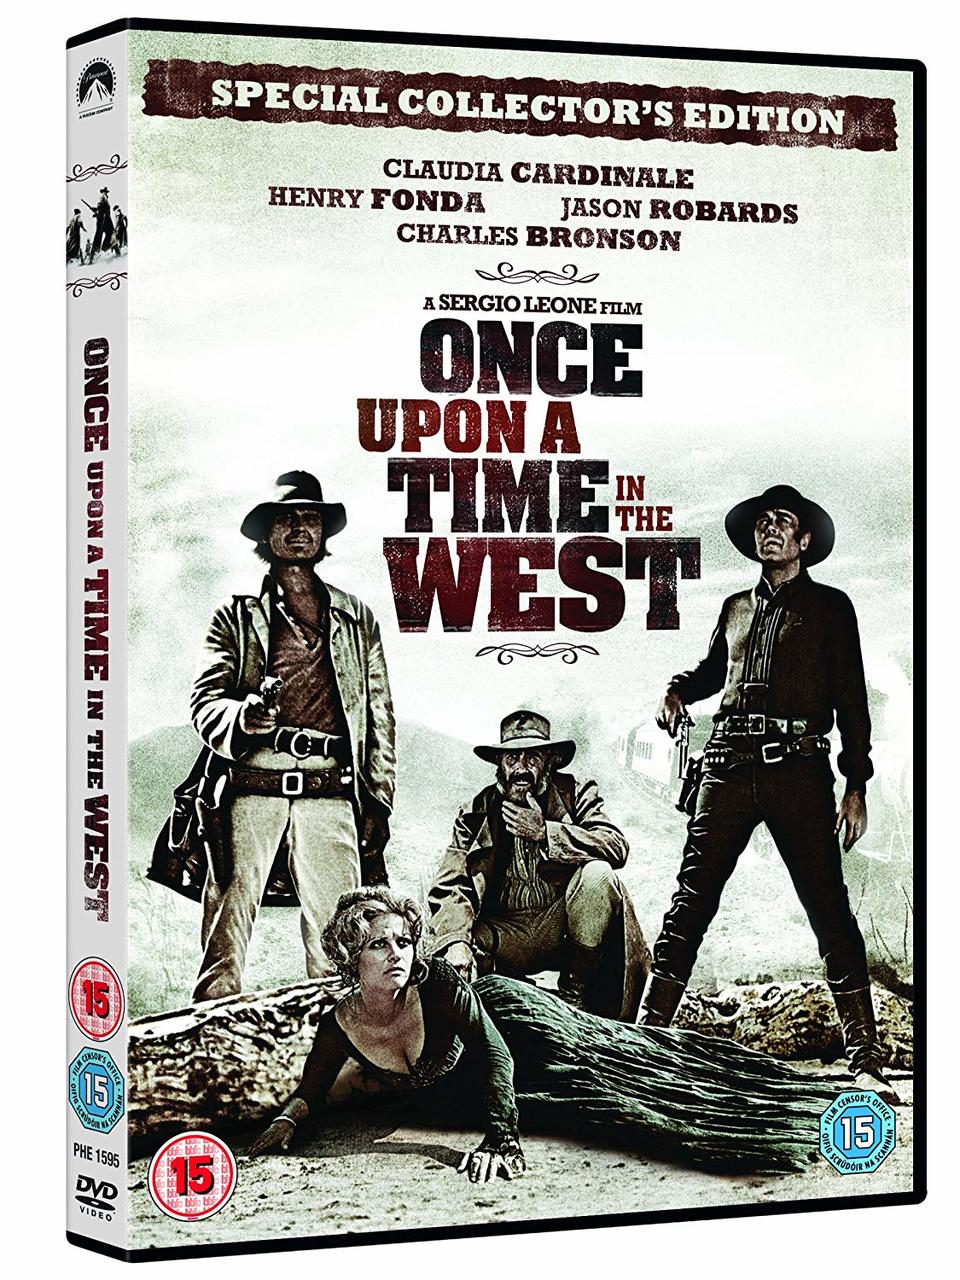 ONCE UPON A TIME IN THE WEST 2011 (2DVD)